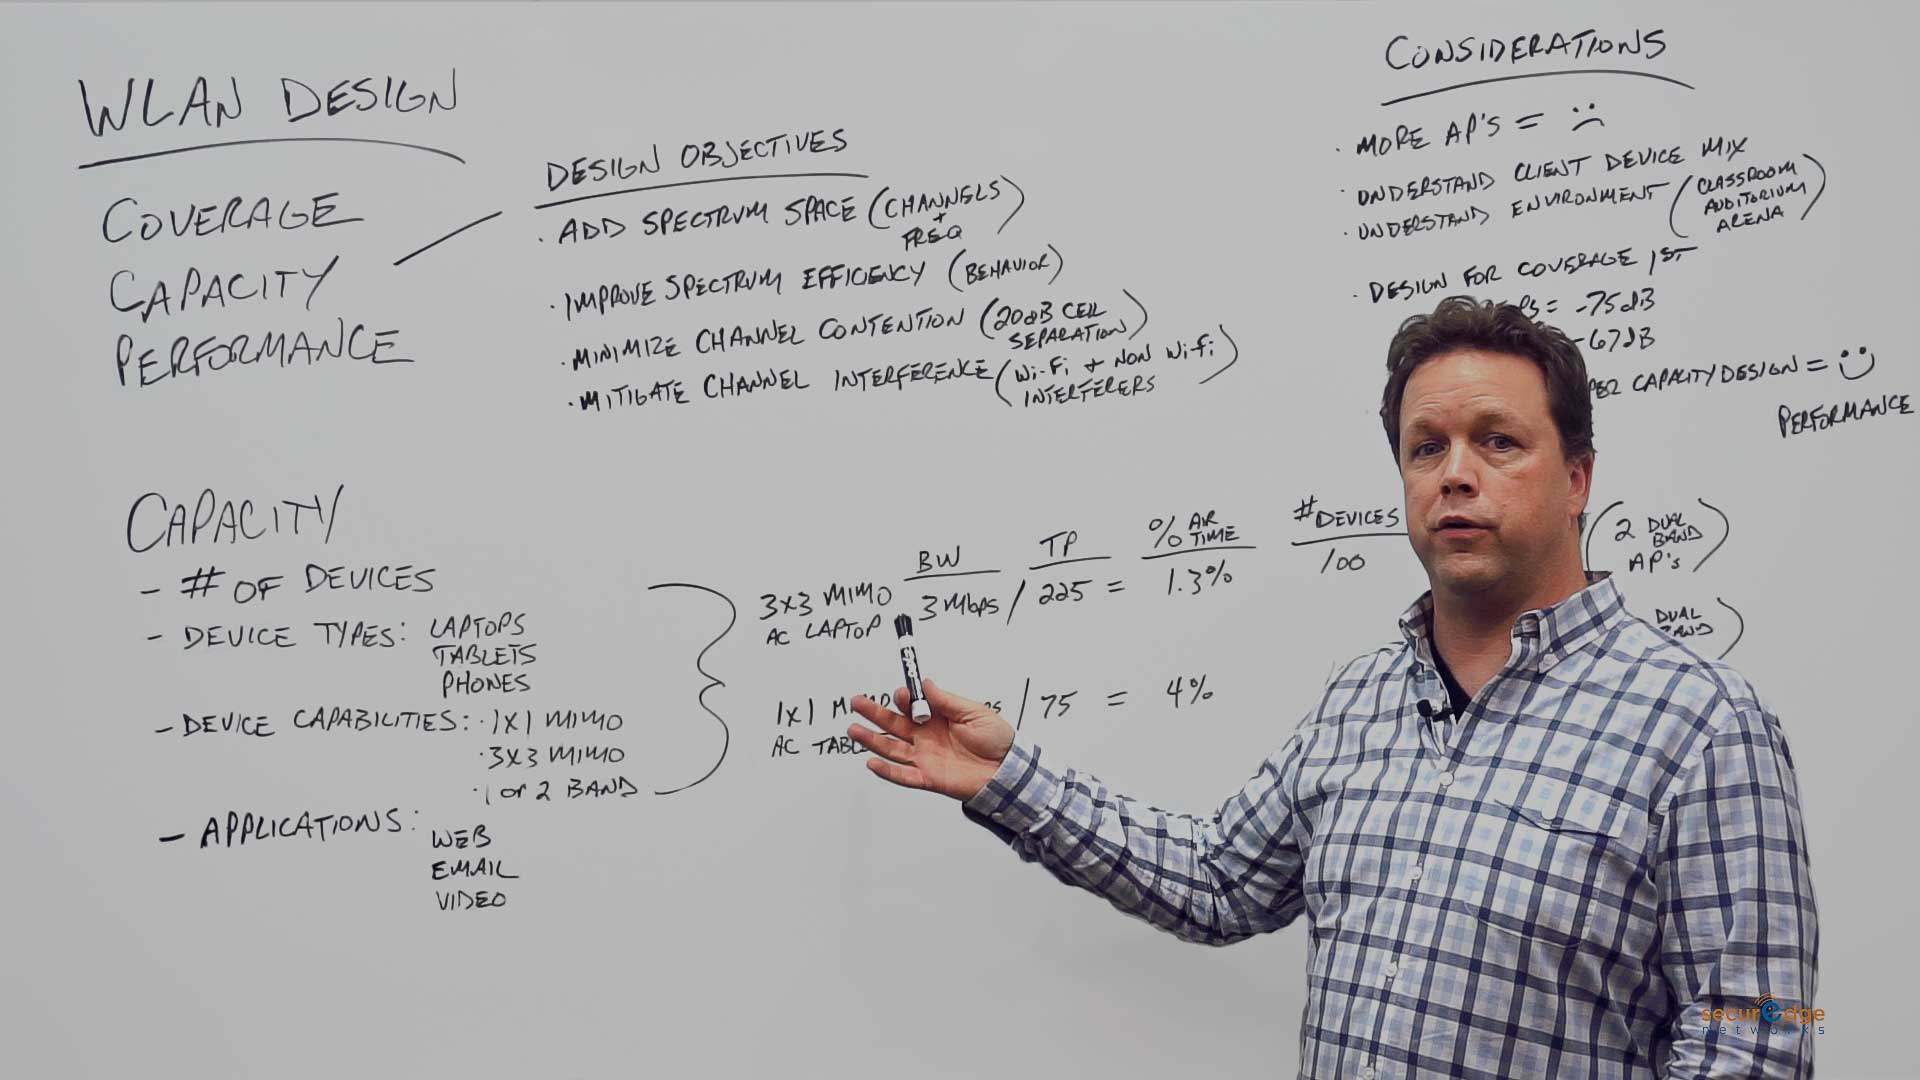 How to Design Wireless Networks for Capacity [Whiteboard Video]